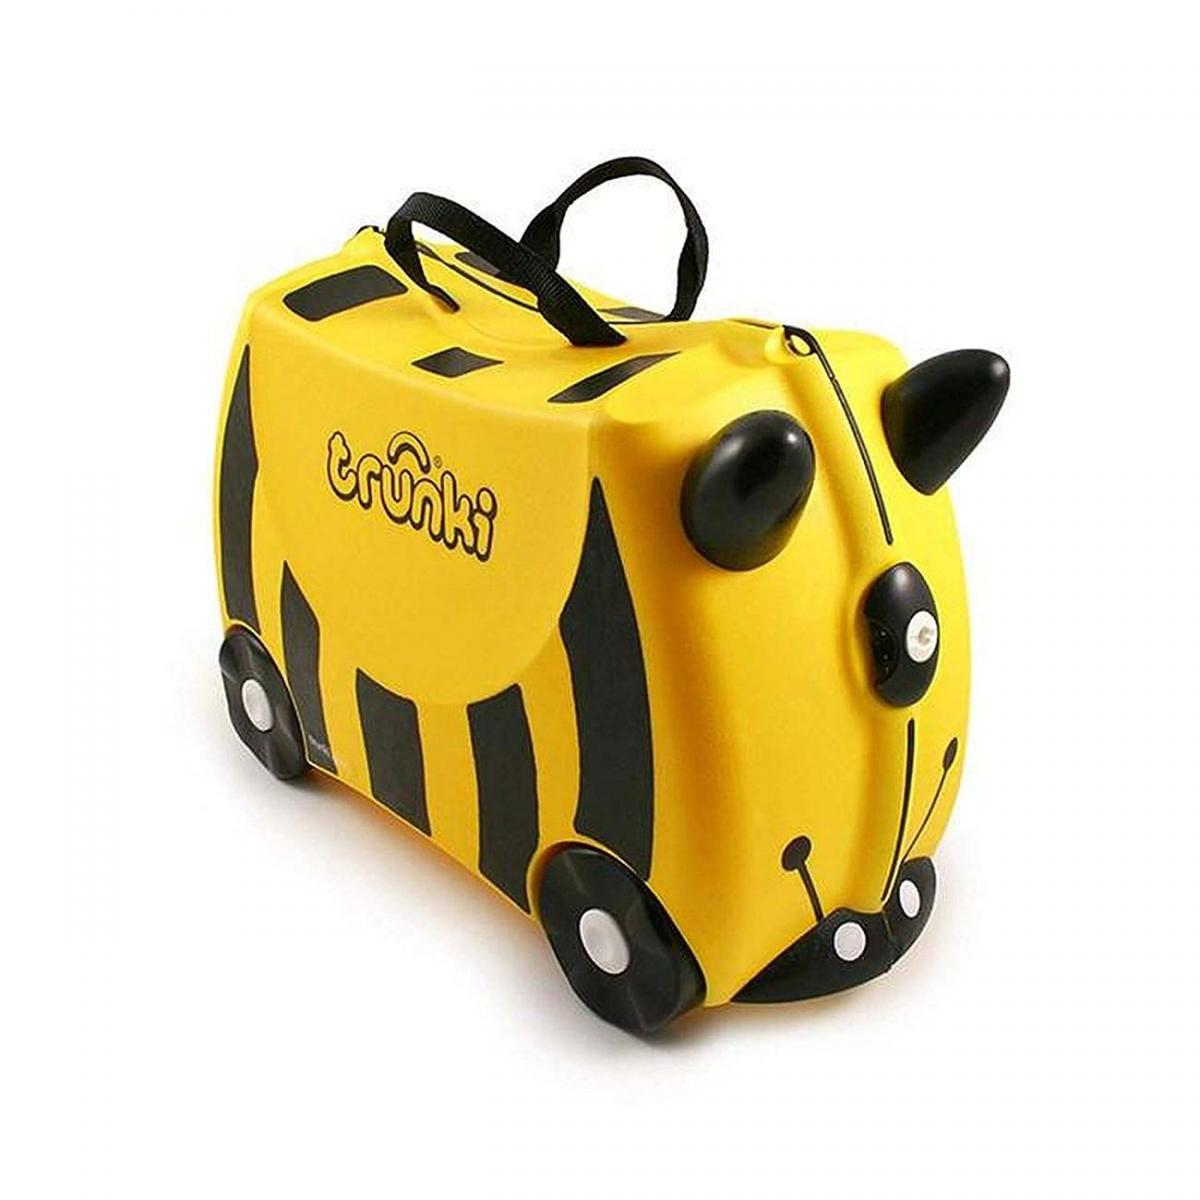 Trunki The Original Ride-On Suitcase